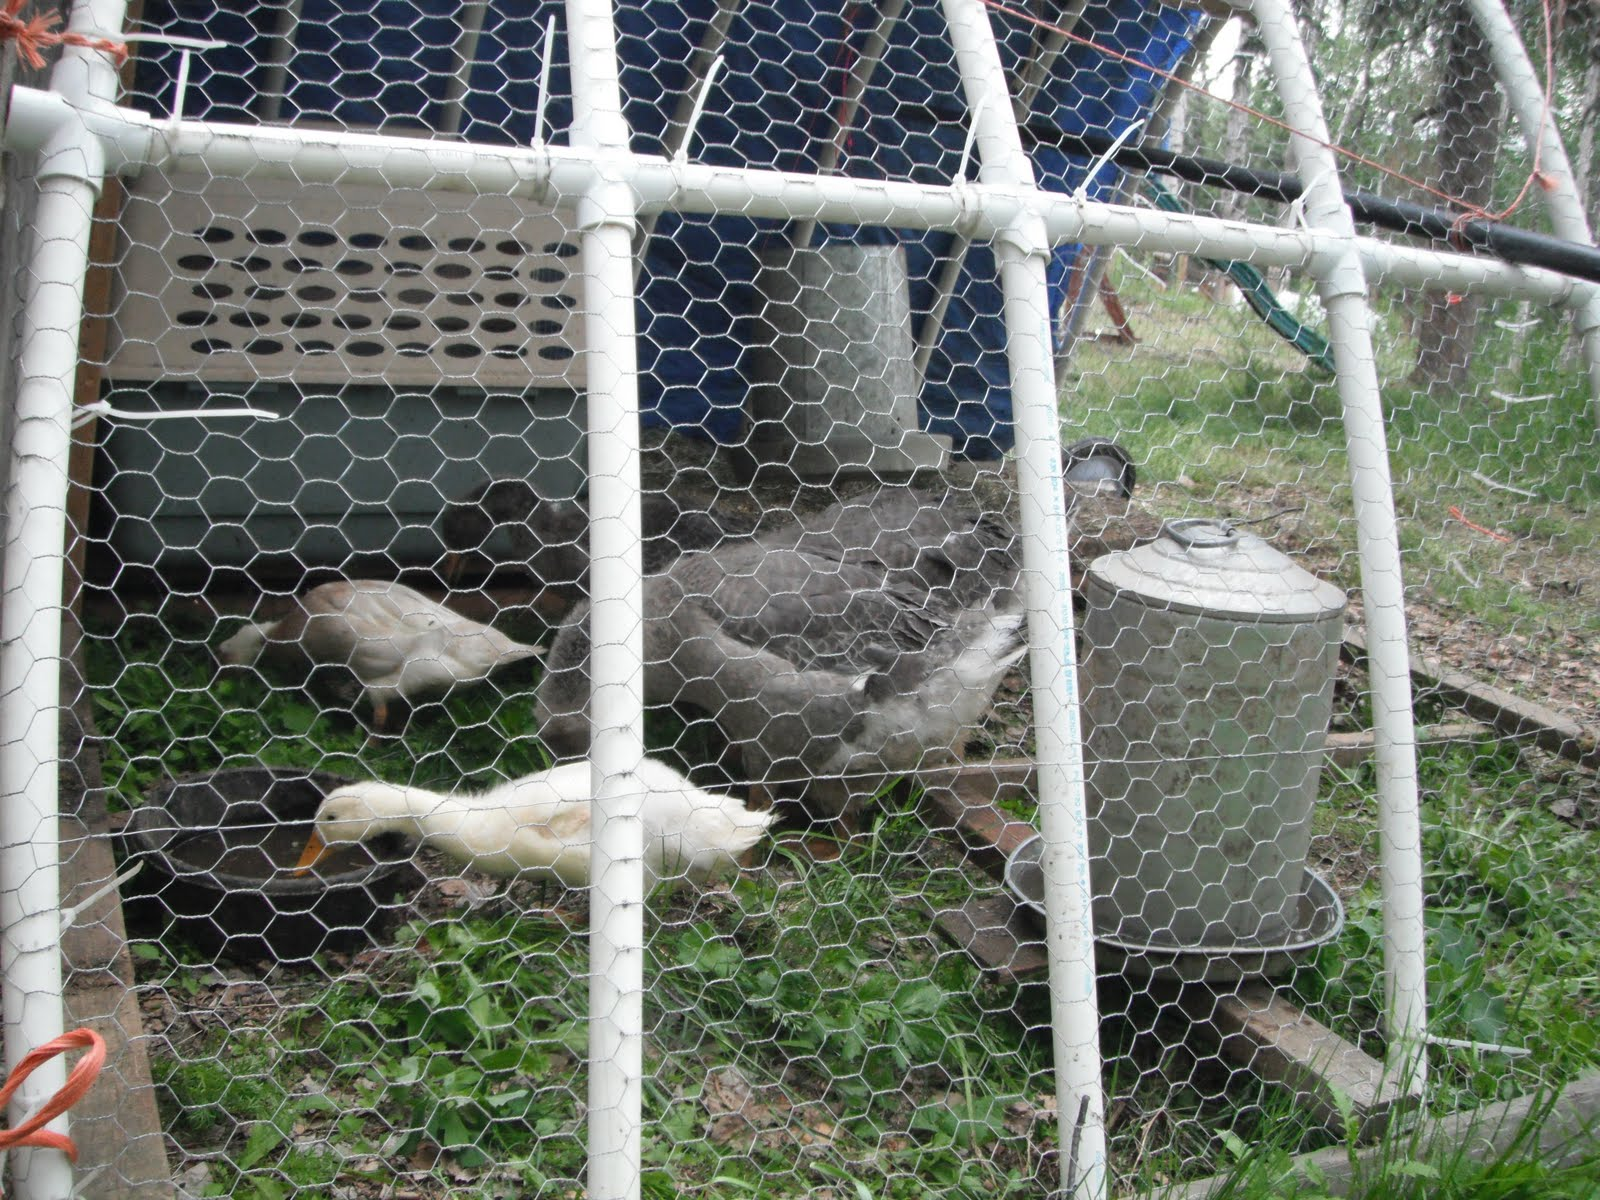 Wild Roots Homestead: Rainy days, kids, geese and the garden